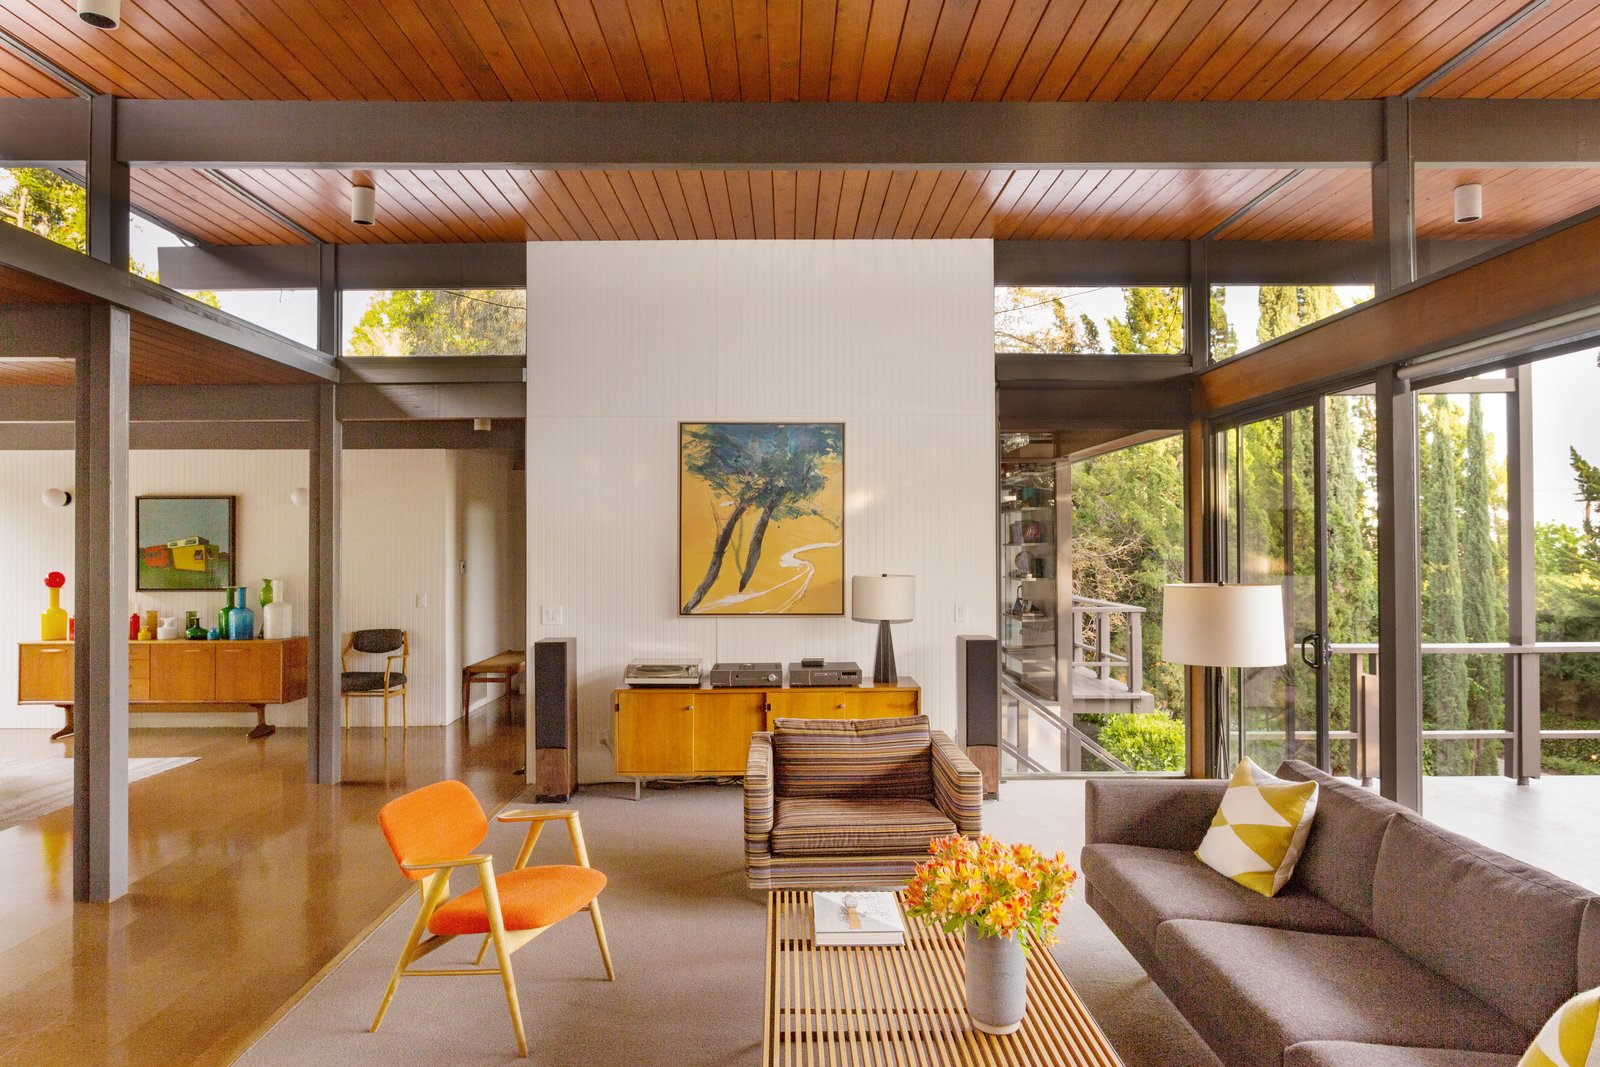 Photo 2 of 12 in This Post-and-Beam in Pasadena Offers Classic California Living For $1.9M